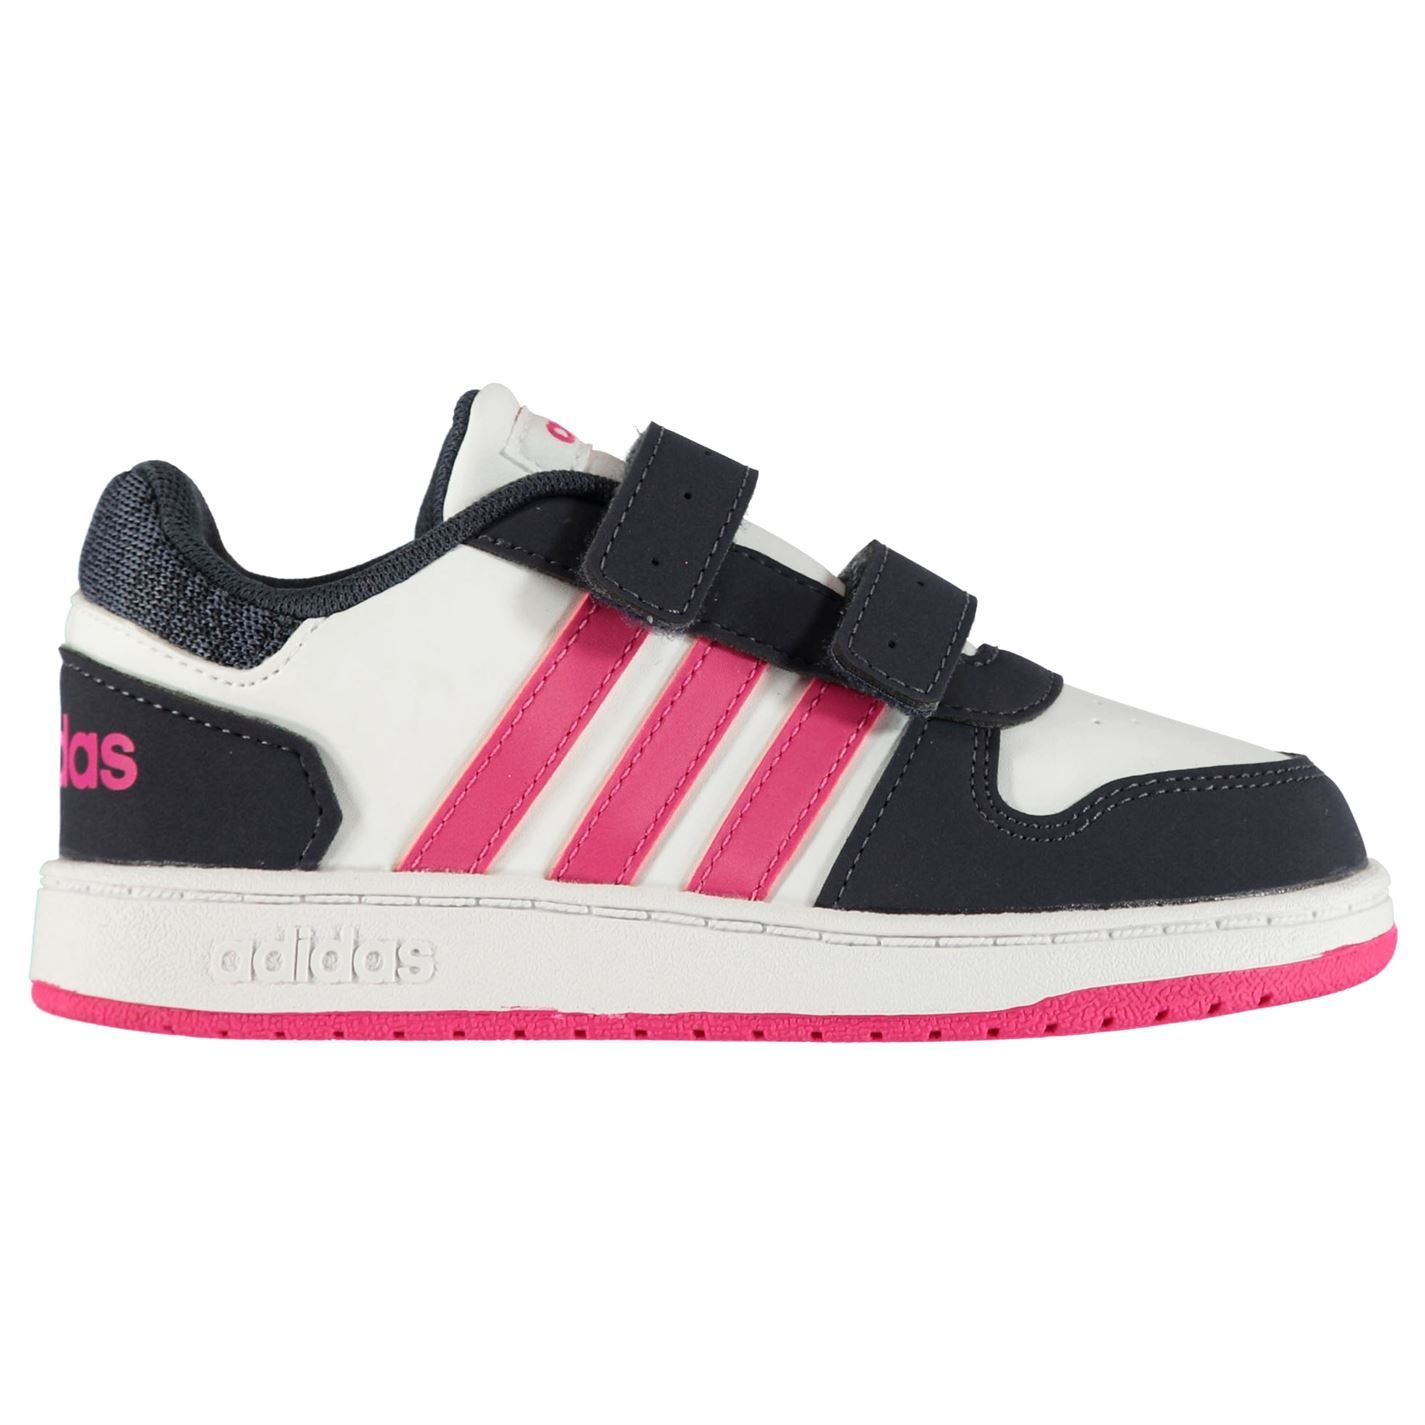 339147a596 ... adidas Hoops 2.0 Trainers Infant Girls White Pink Navy Shoes Footwear  ...